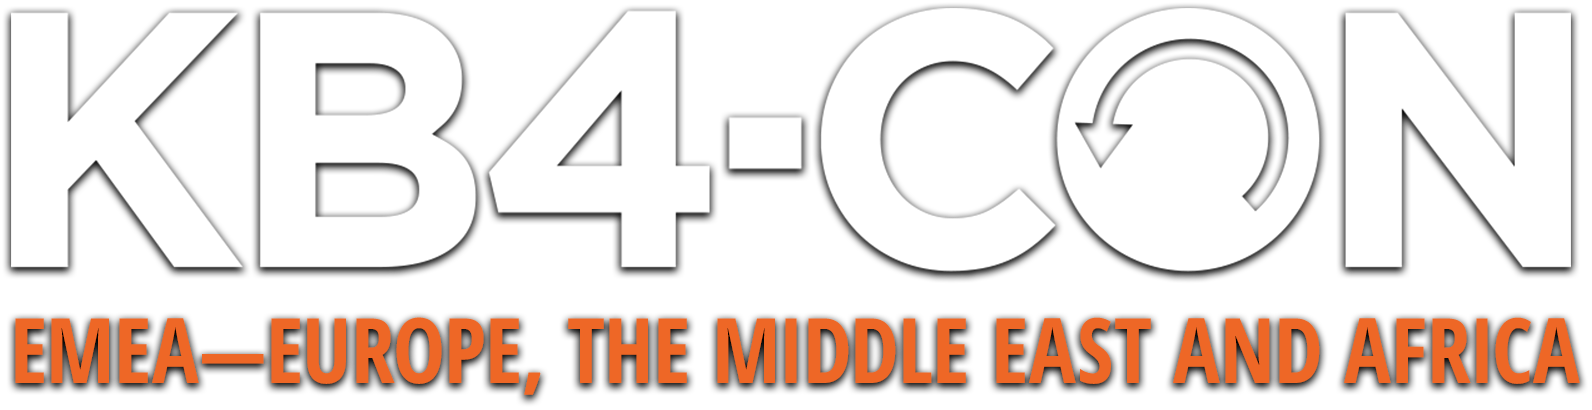 KB4-CON EMEA—Europe, the Middle East and Africa